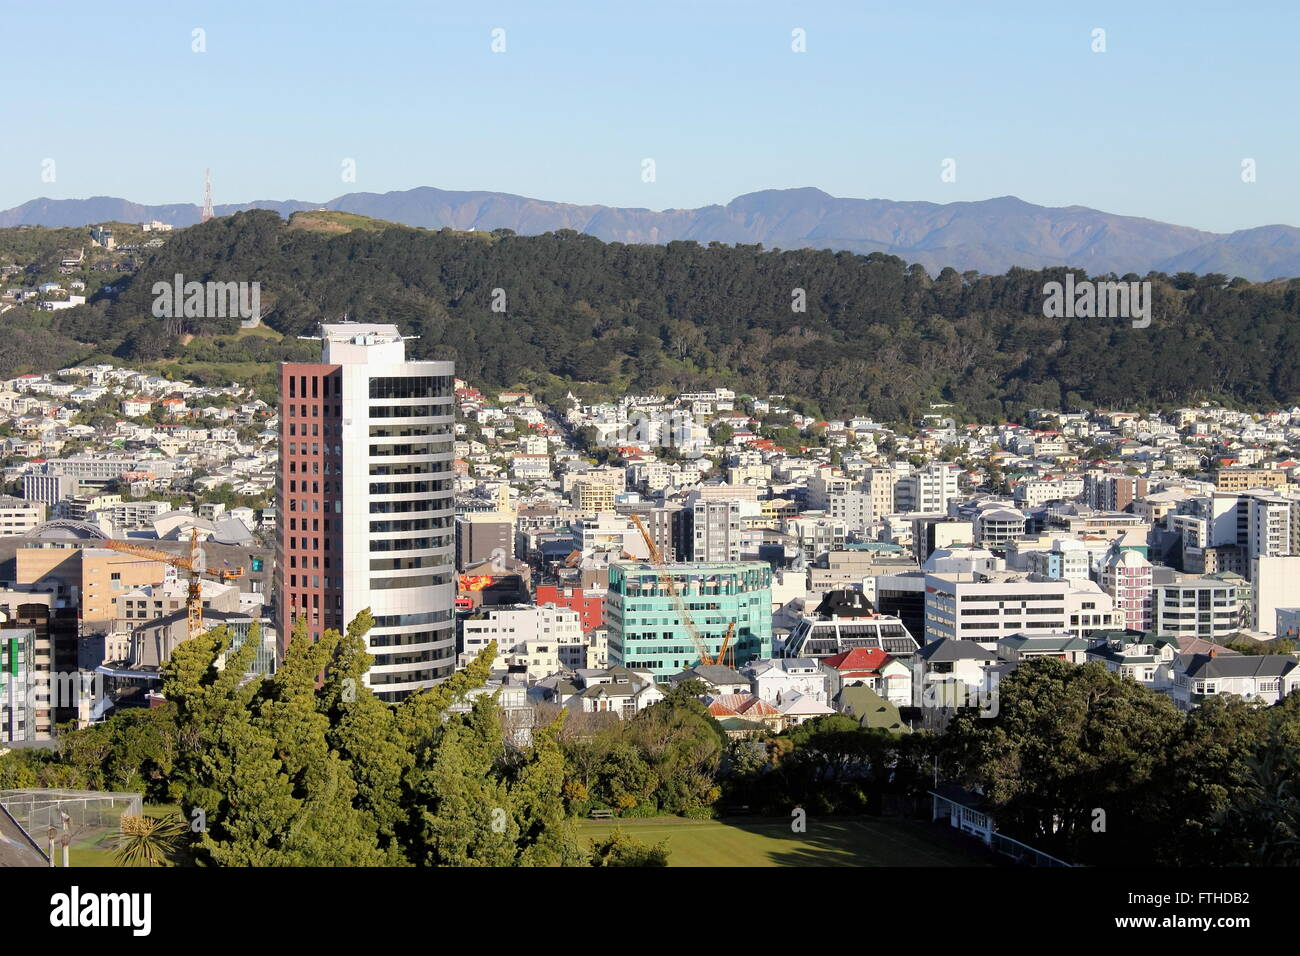 La ville de Wellington, Nouvelle-Zélande Photo Stock